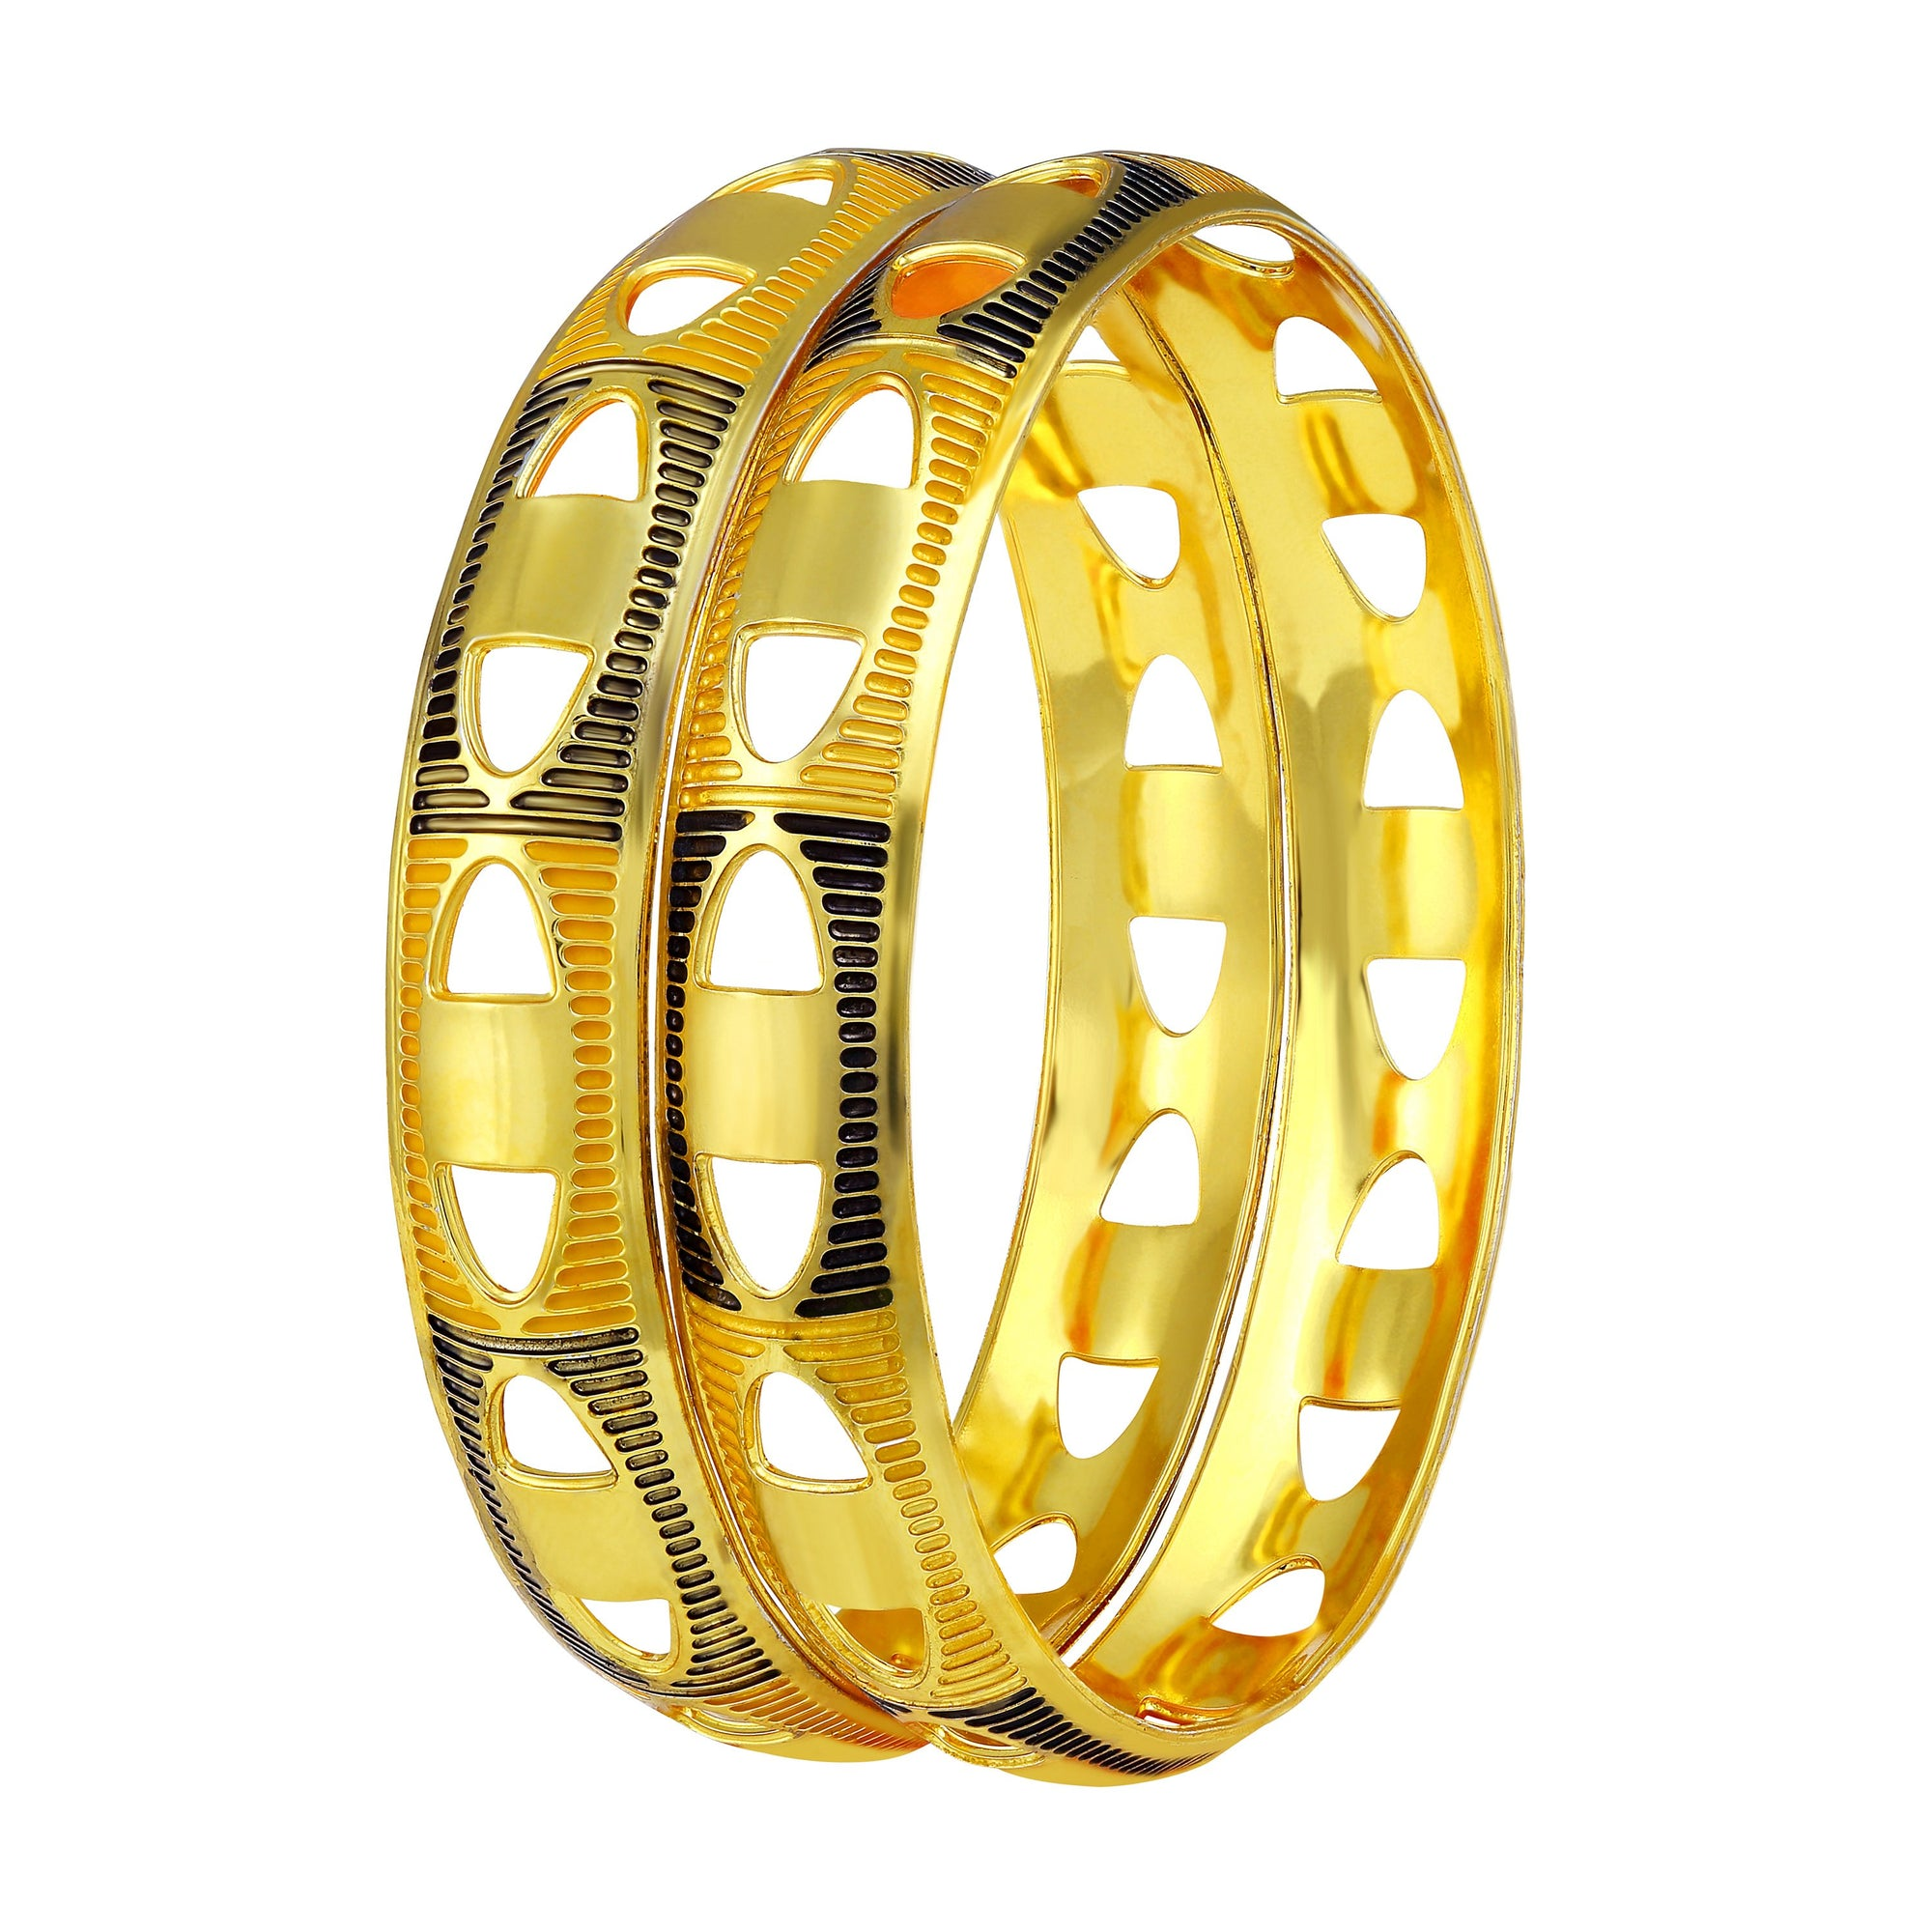 Asmitta Jewellery Gold Enamel Bangle  -BG171